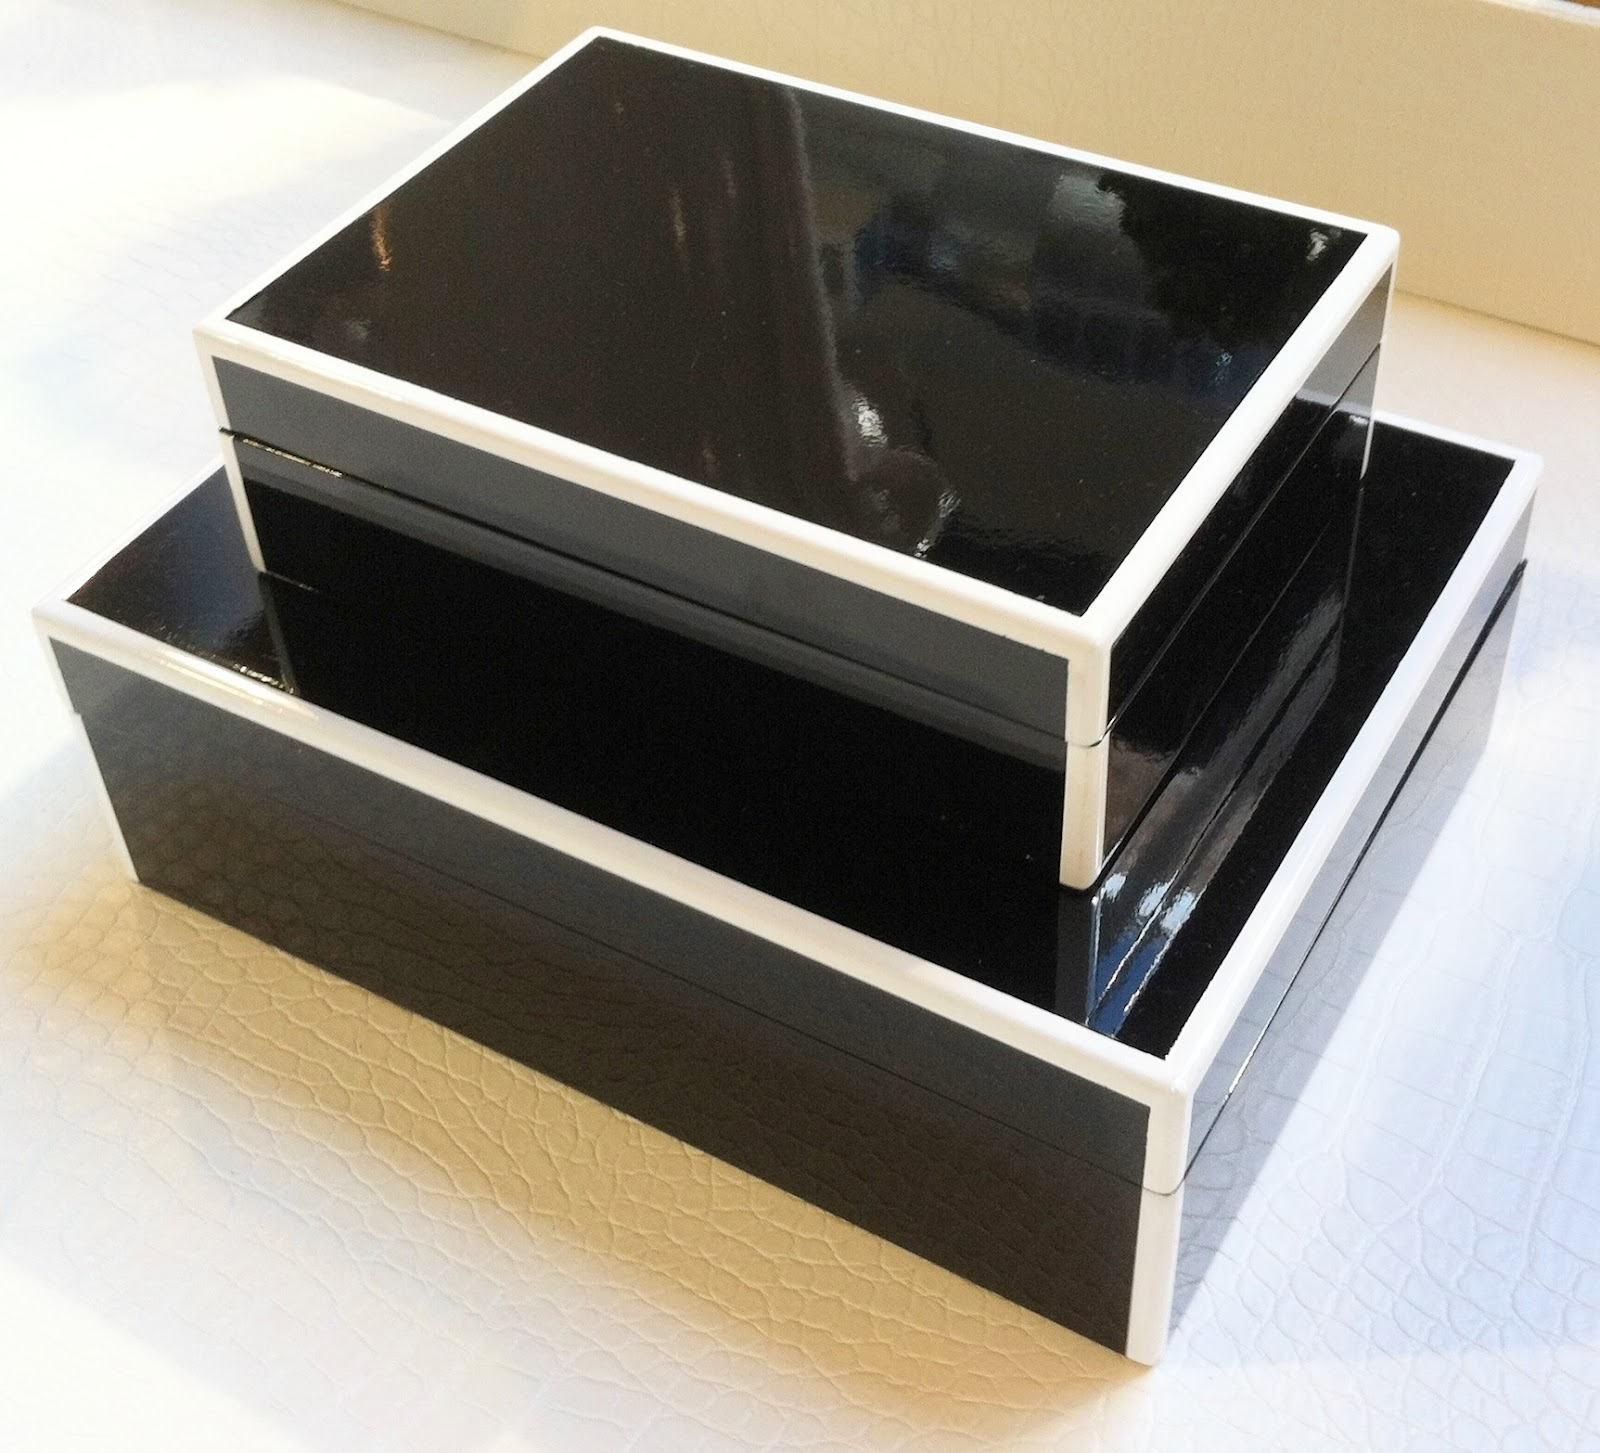 Decorative Boxes Storage: Megan And Margaret: Decorative Boxes For All Your Needs